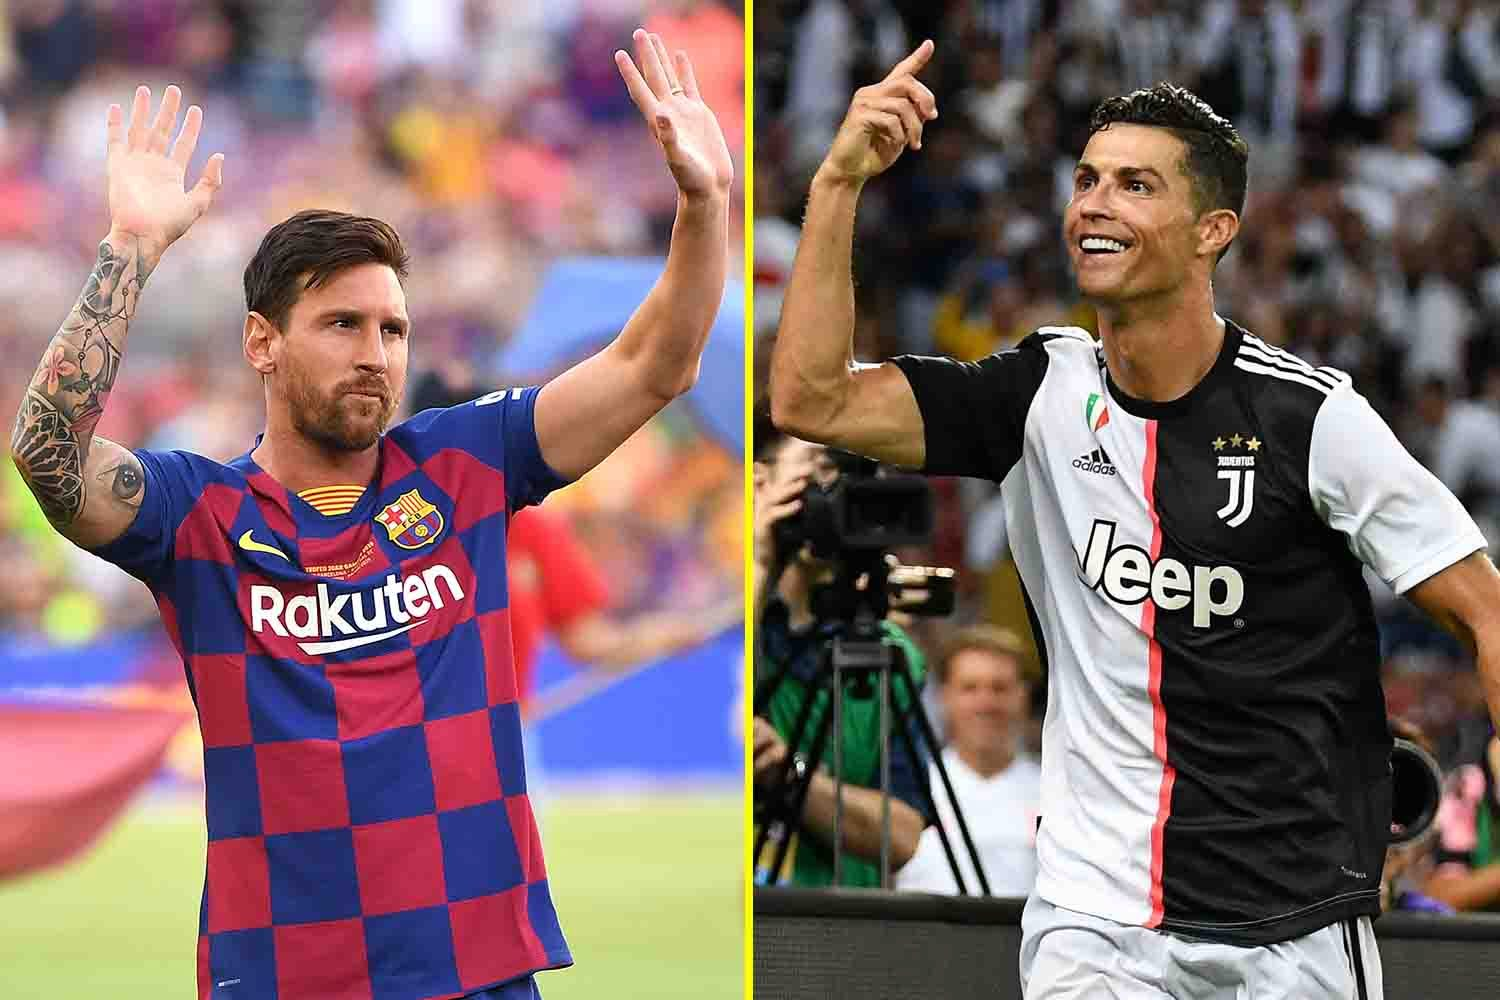 Lionel Messi and Cristiano Ronaldo are considered the best in the world